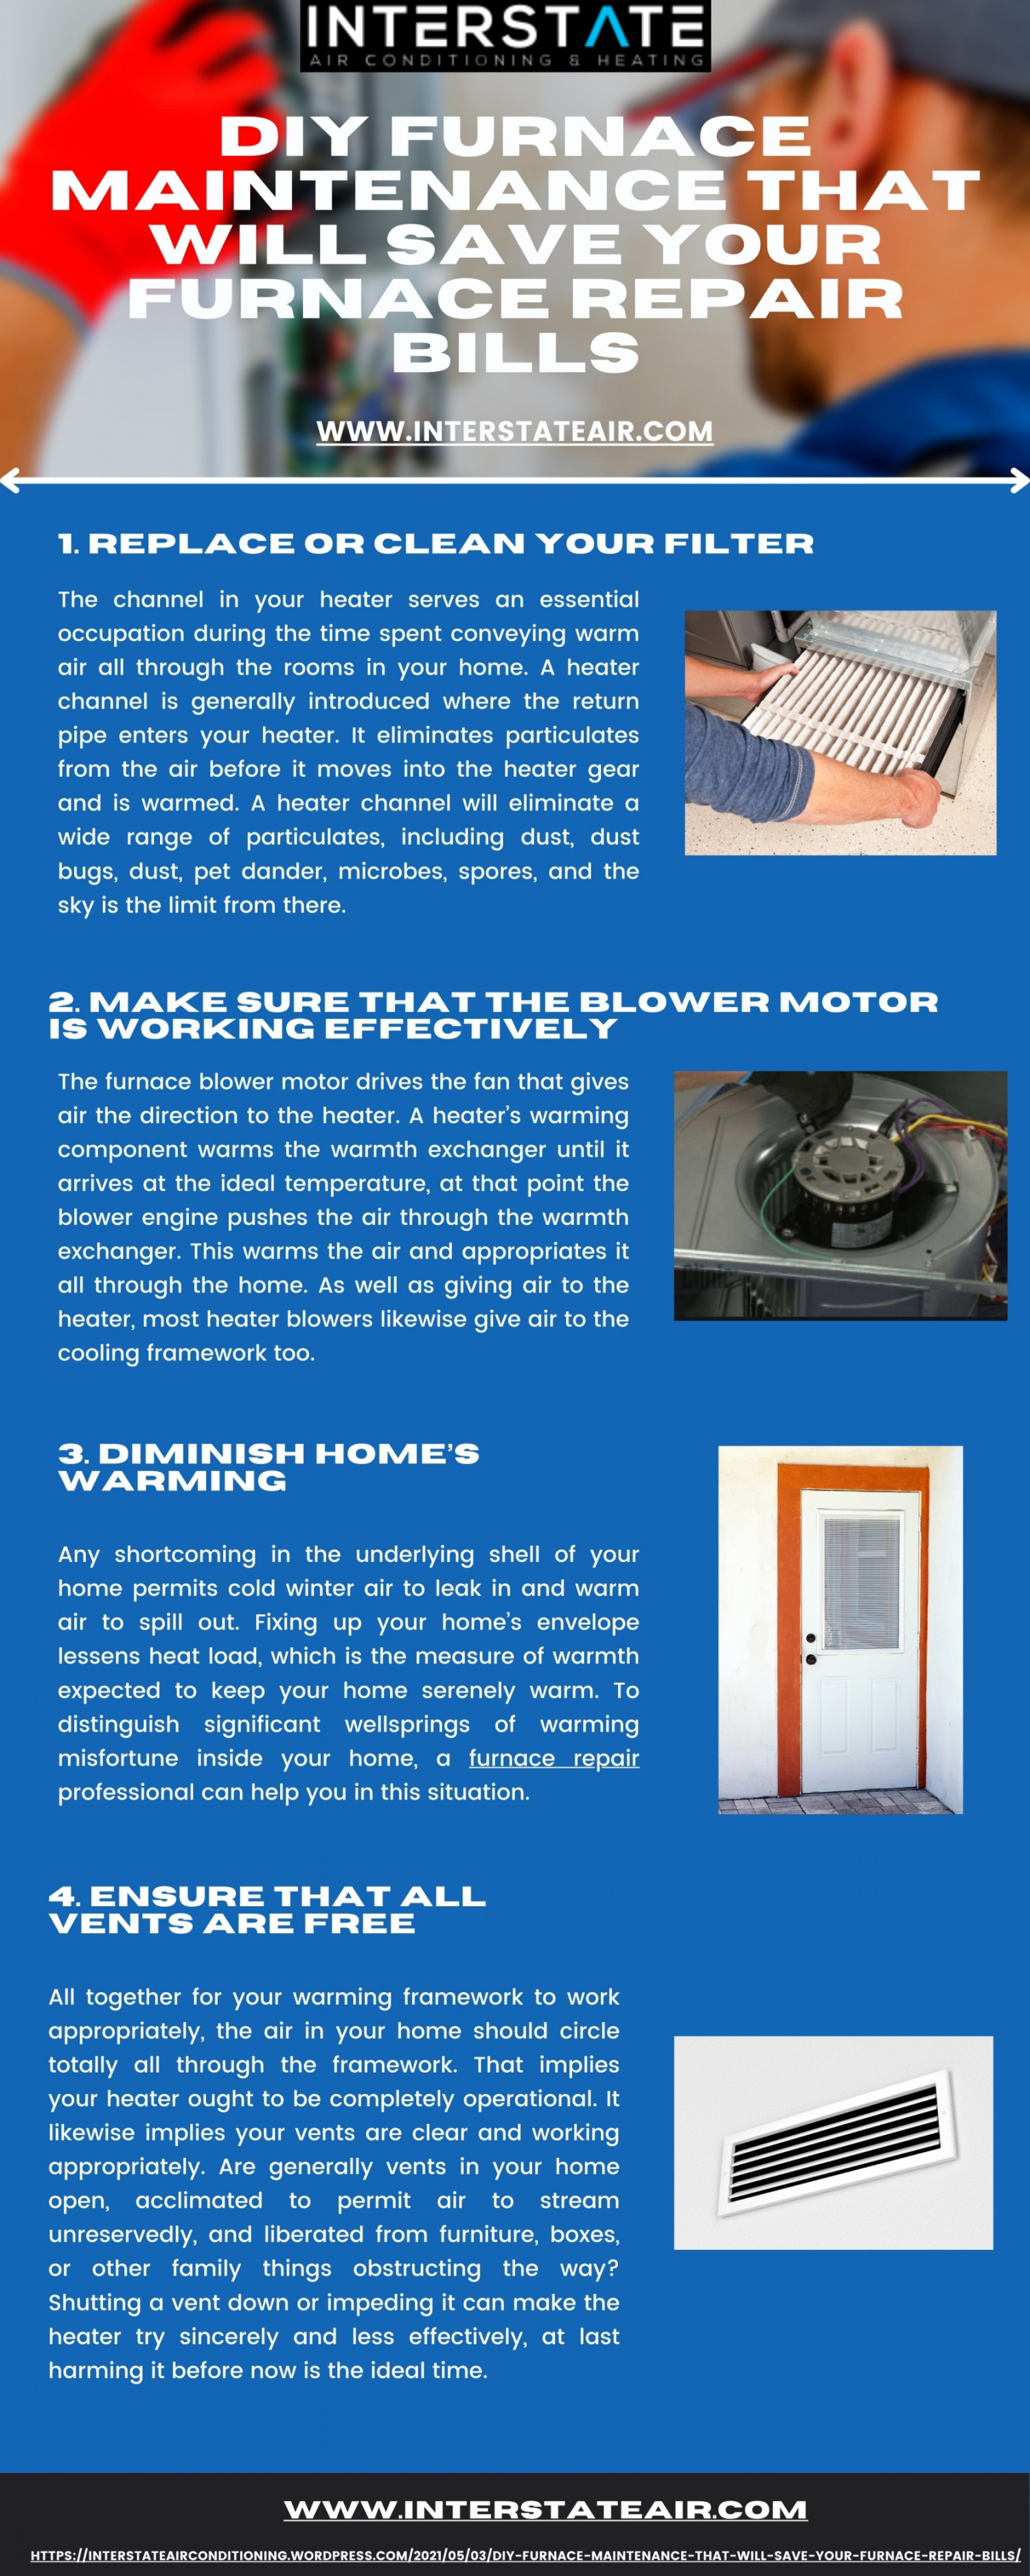 DIY Furnace Maintenance That Will Save Your Furnace Repair Bills Infographic